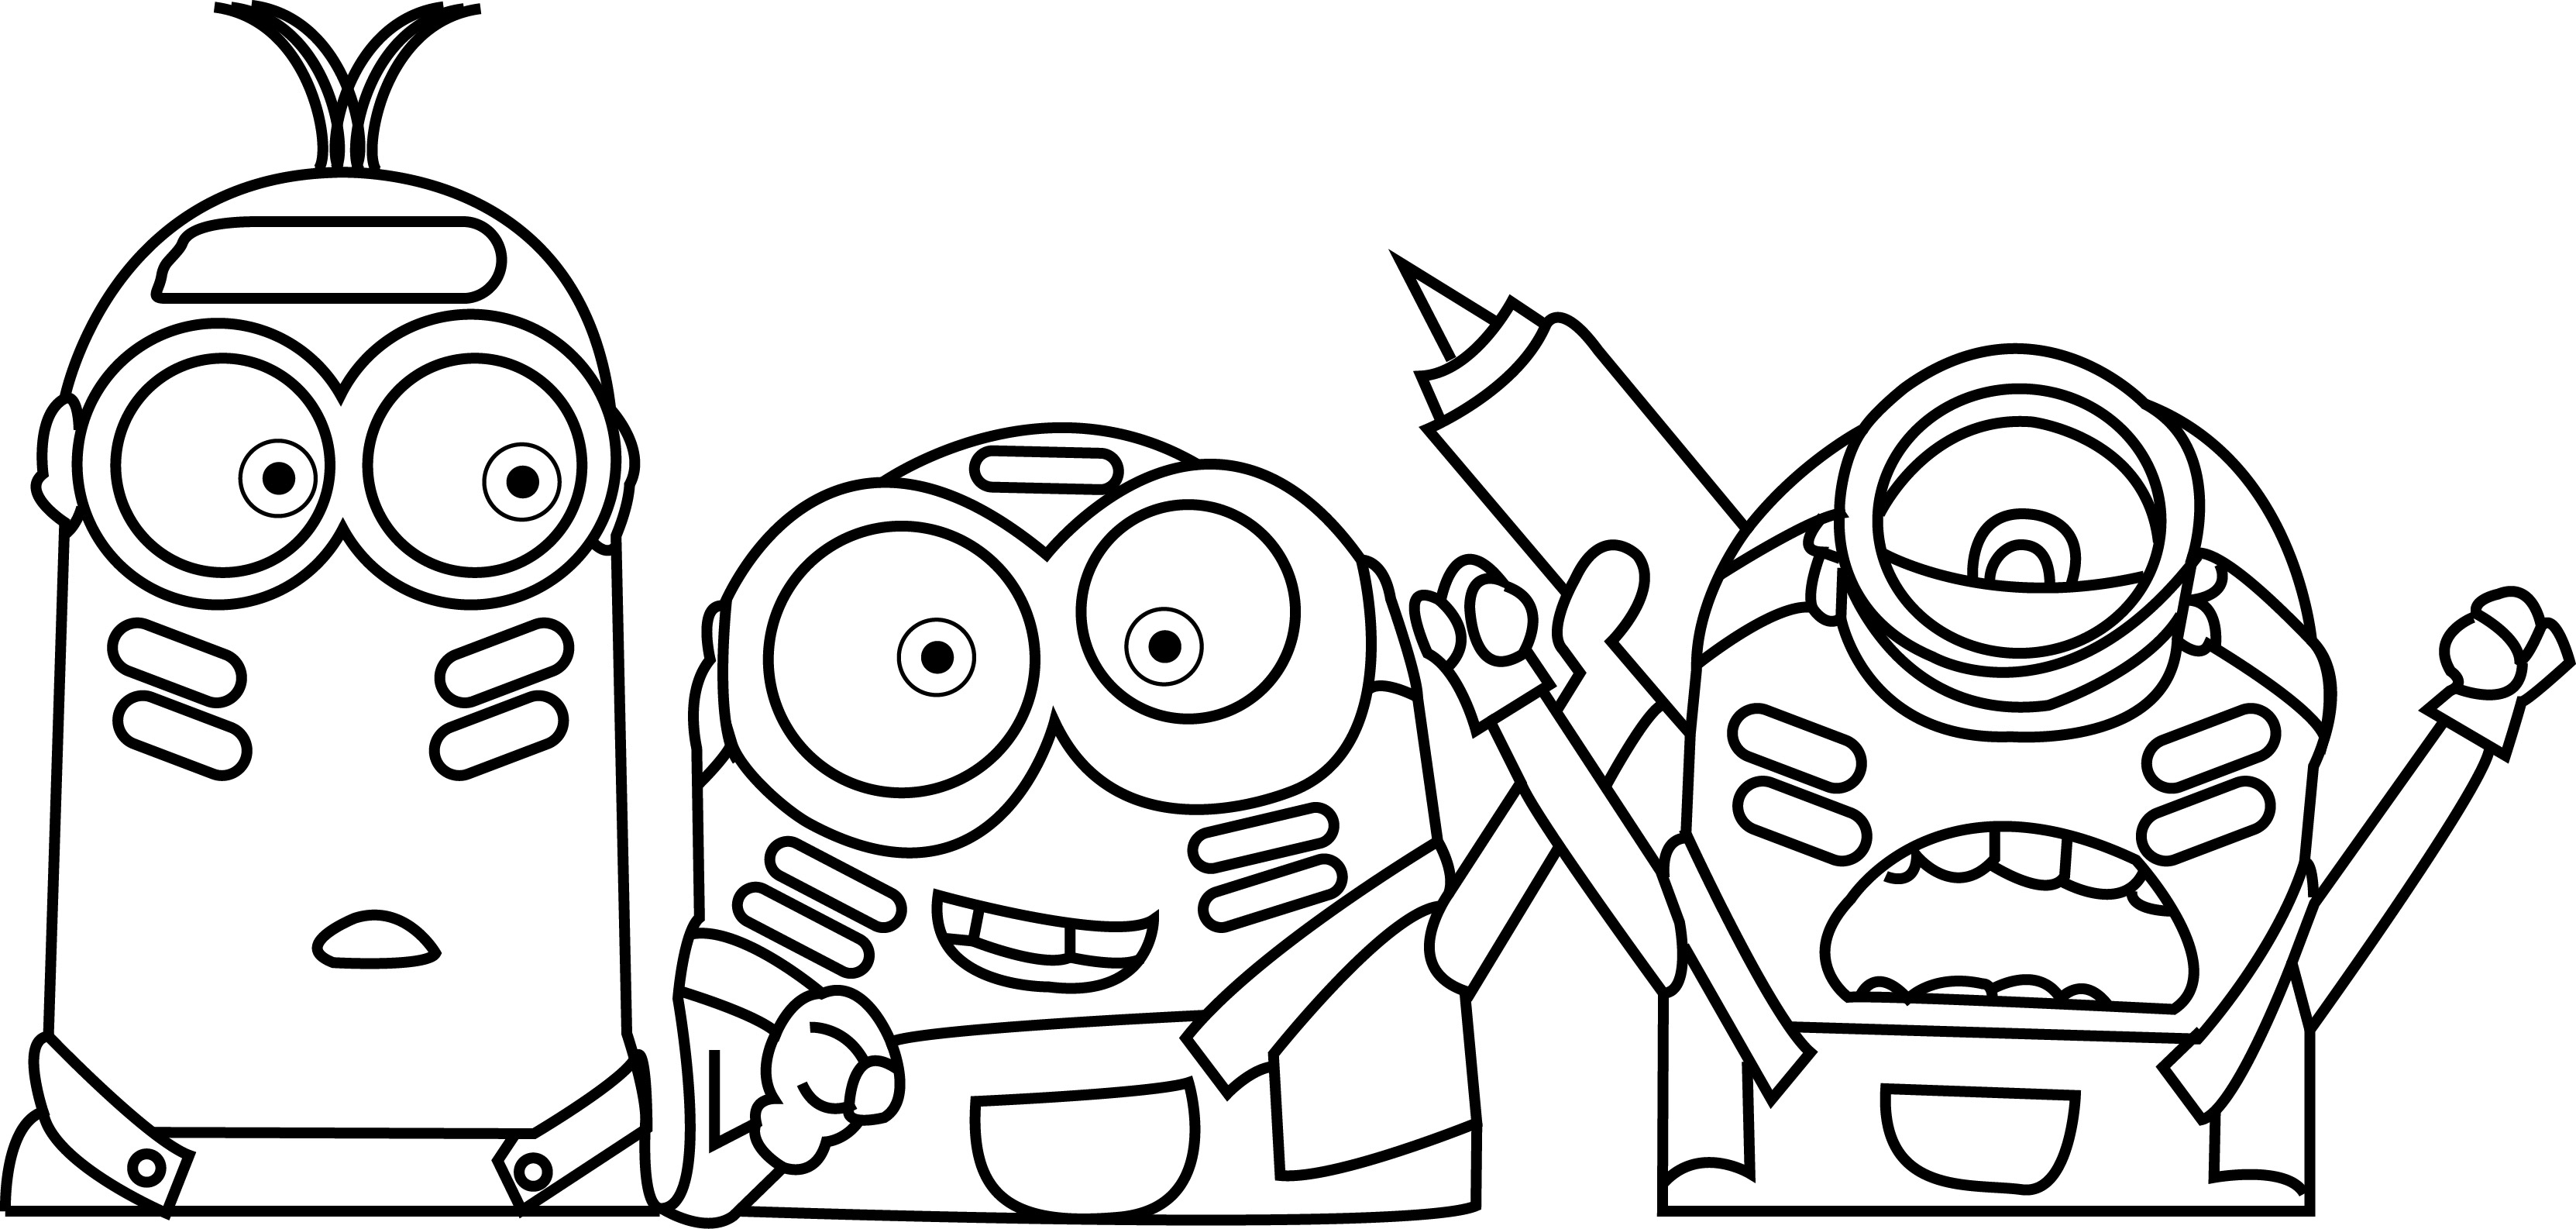 Minion coloring page images - Minions Color War Coloring Page